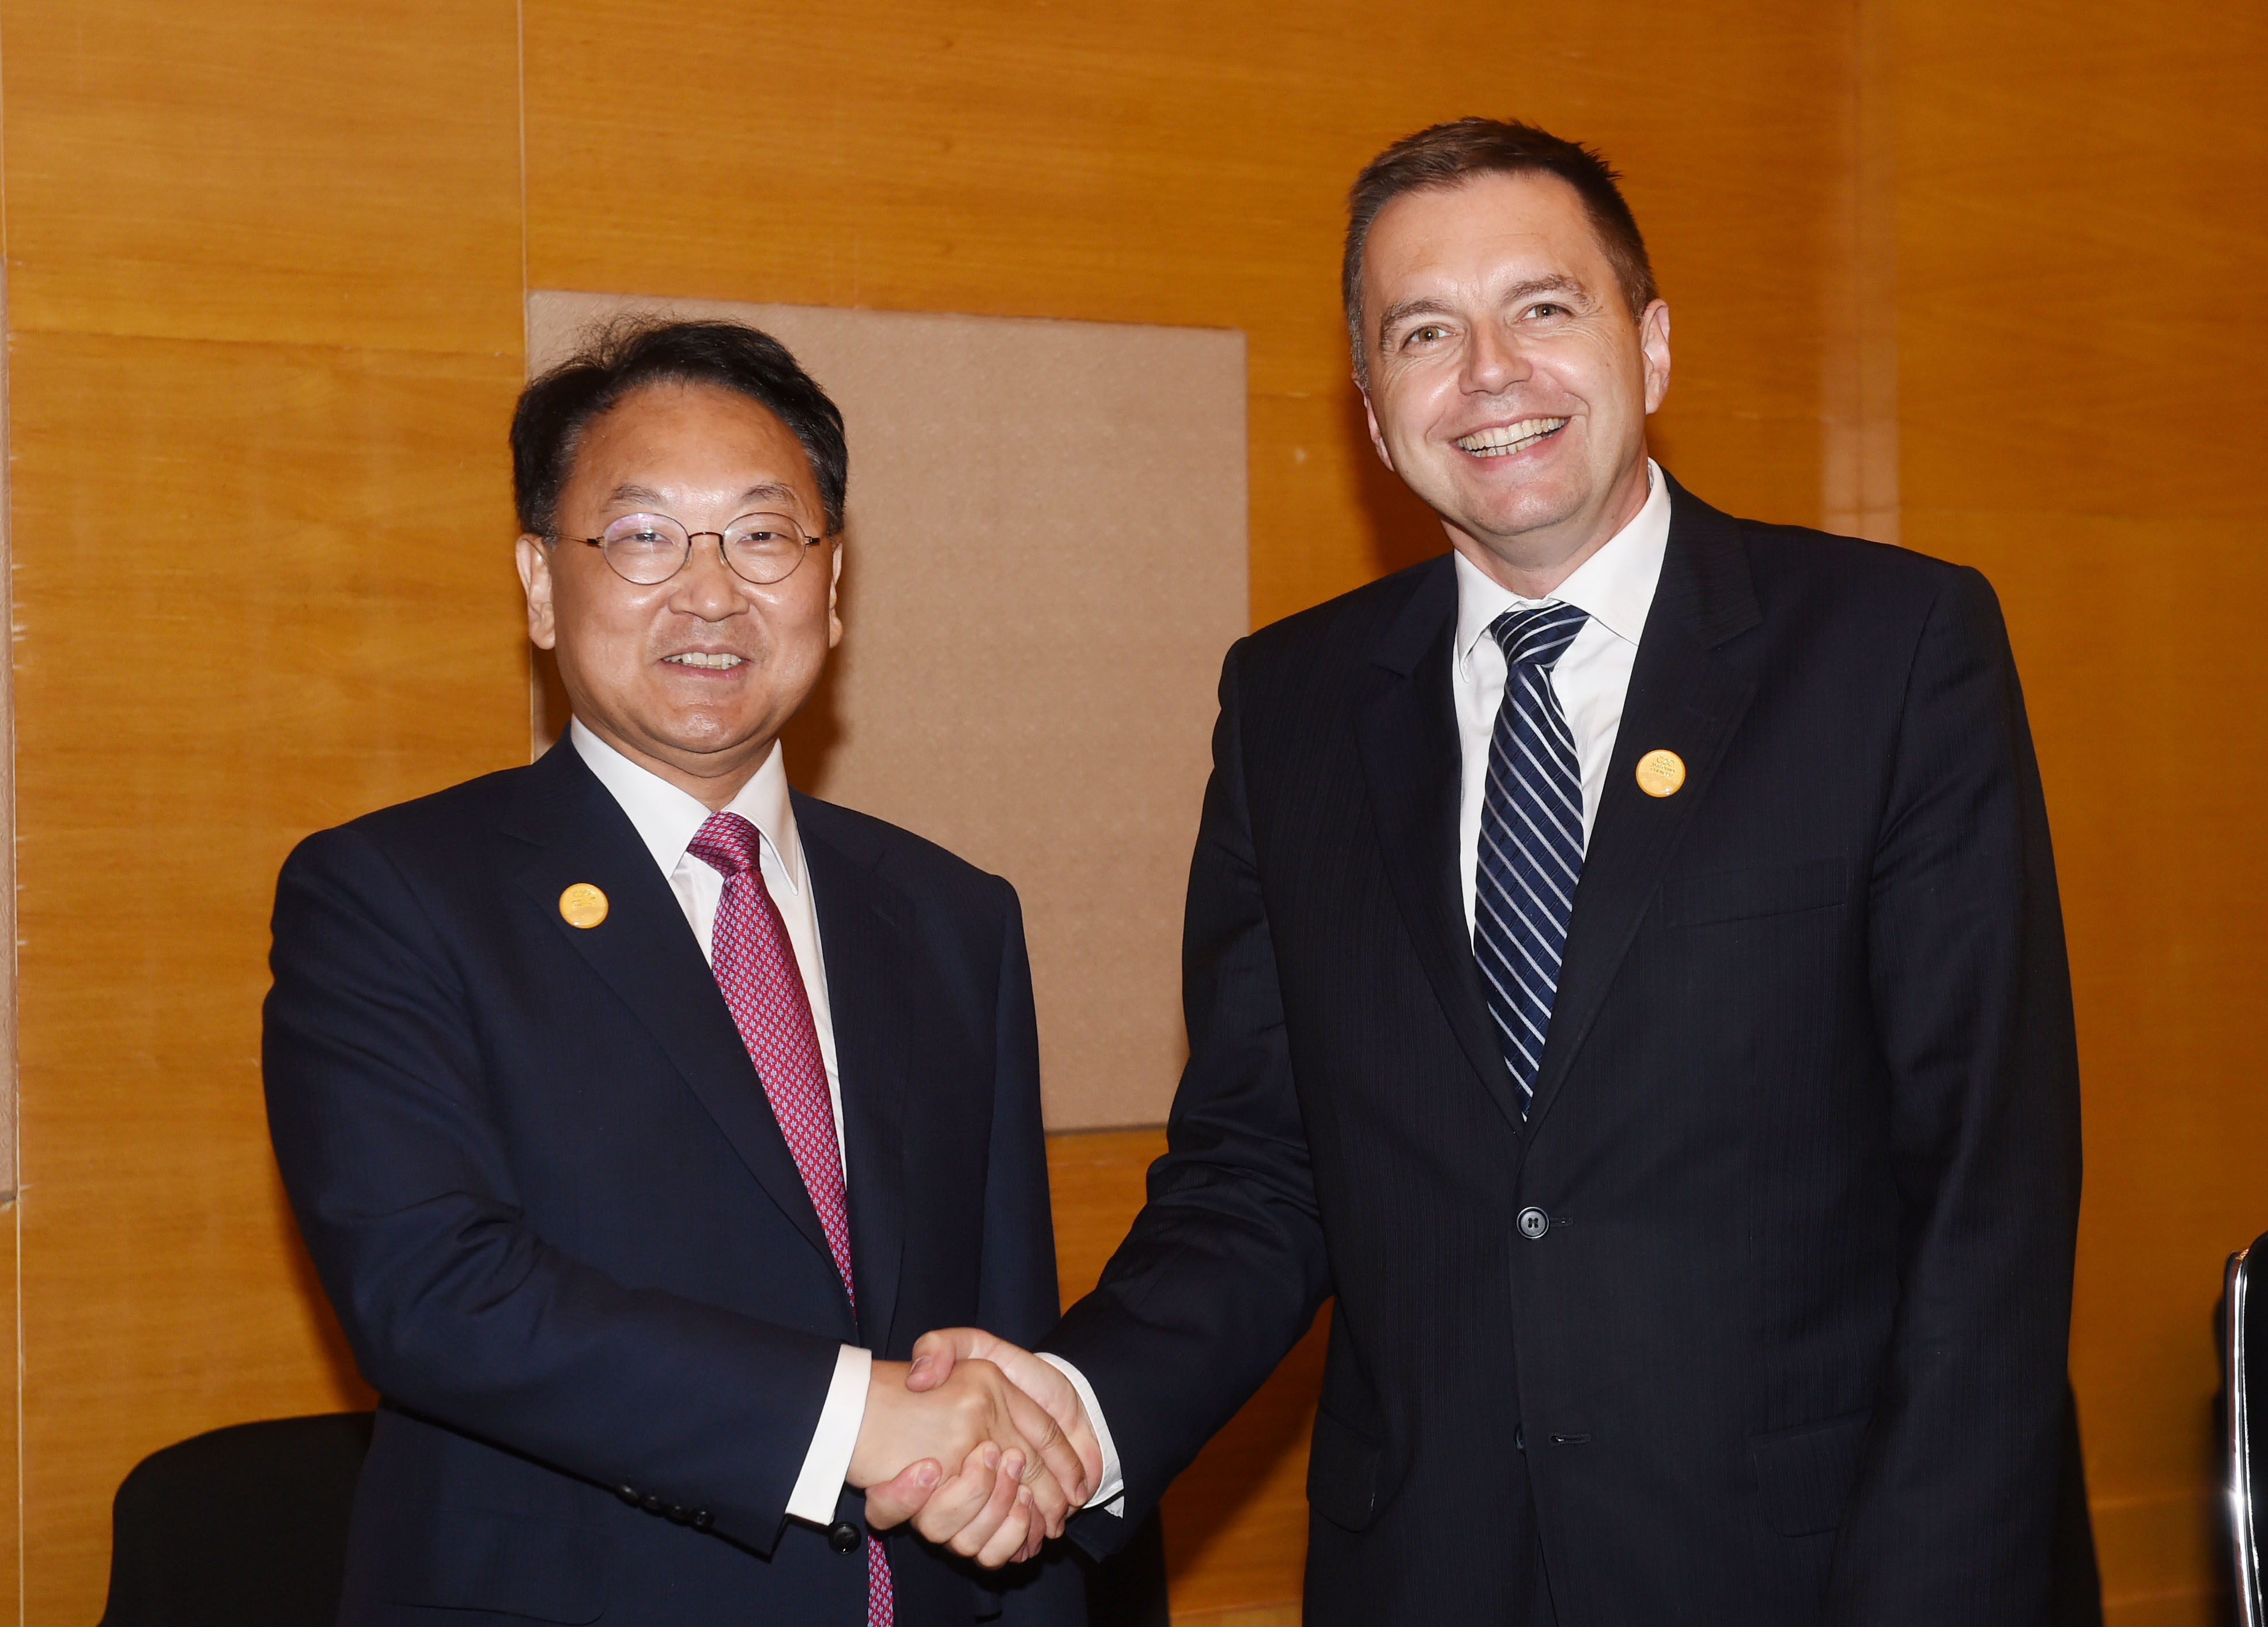 Deputy Prime Minister Yoo meets with Slovak Finance Minister Peter Kazimir in Chengdu, China